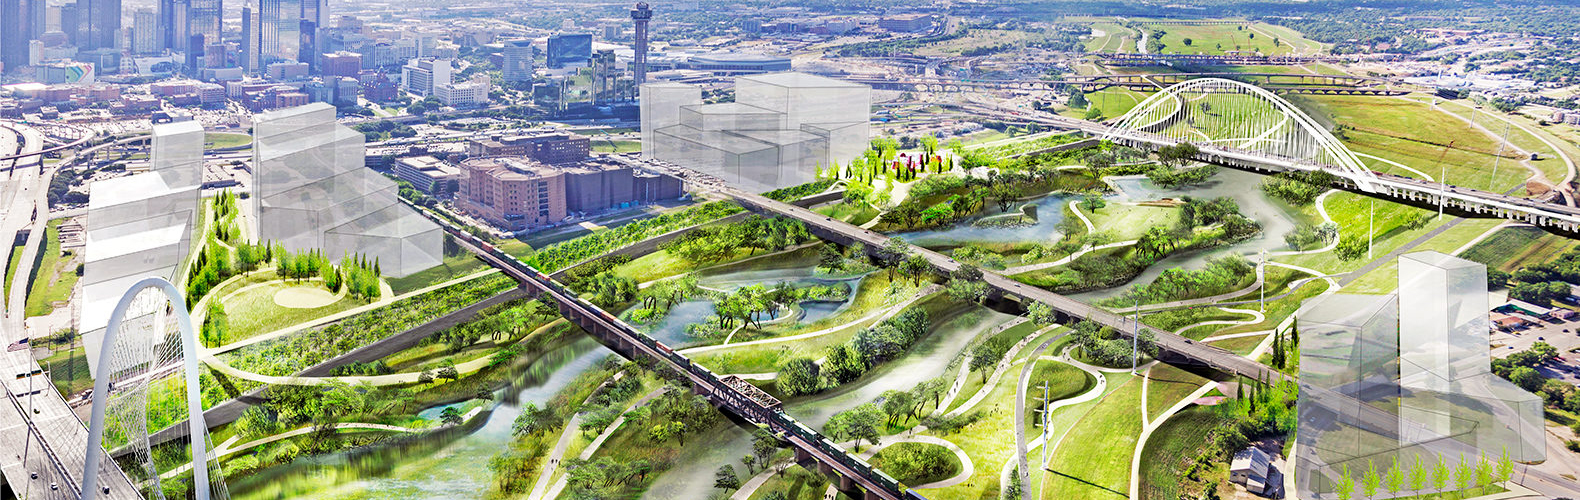 trinity river park, dallas, urban design, green space, parks, america's largest park, top inhabitat story 2016